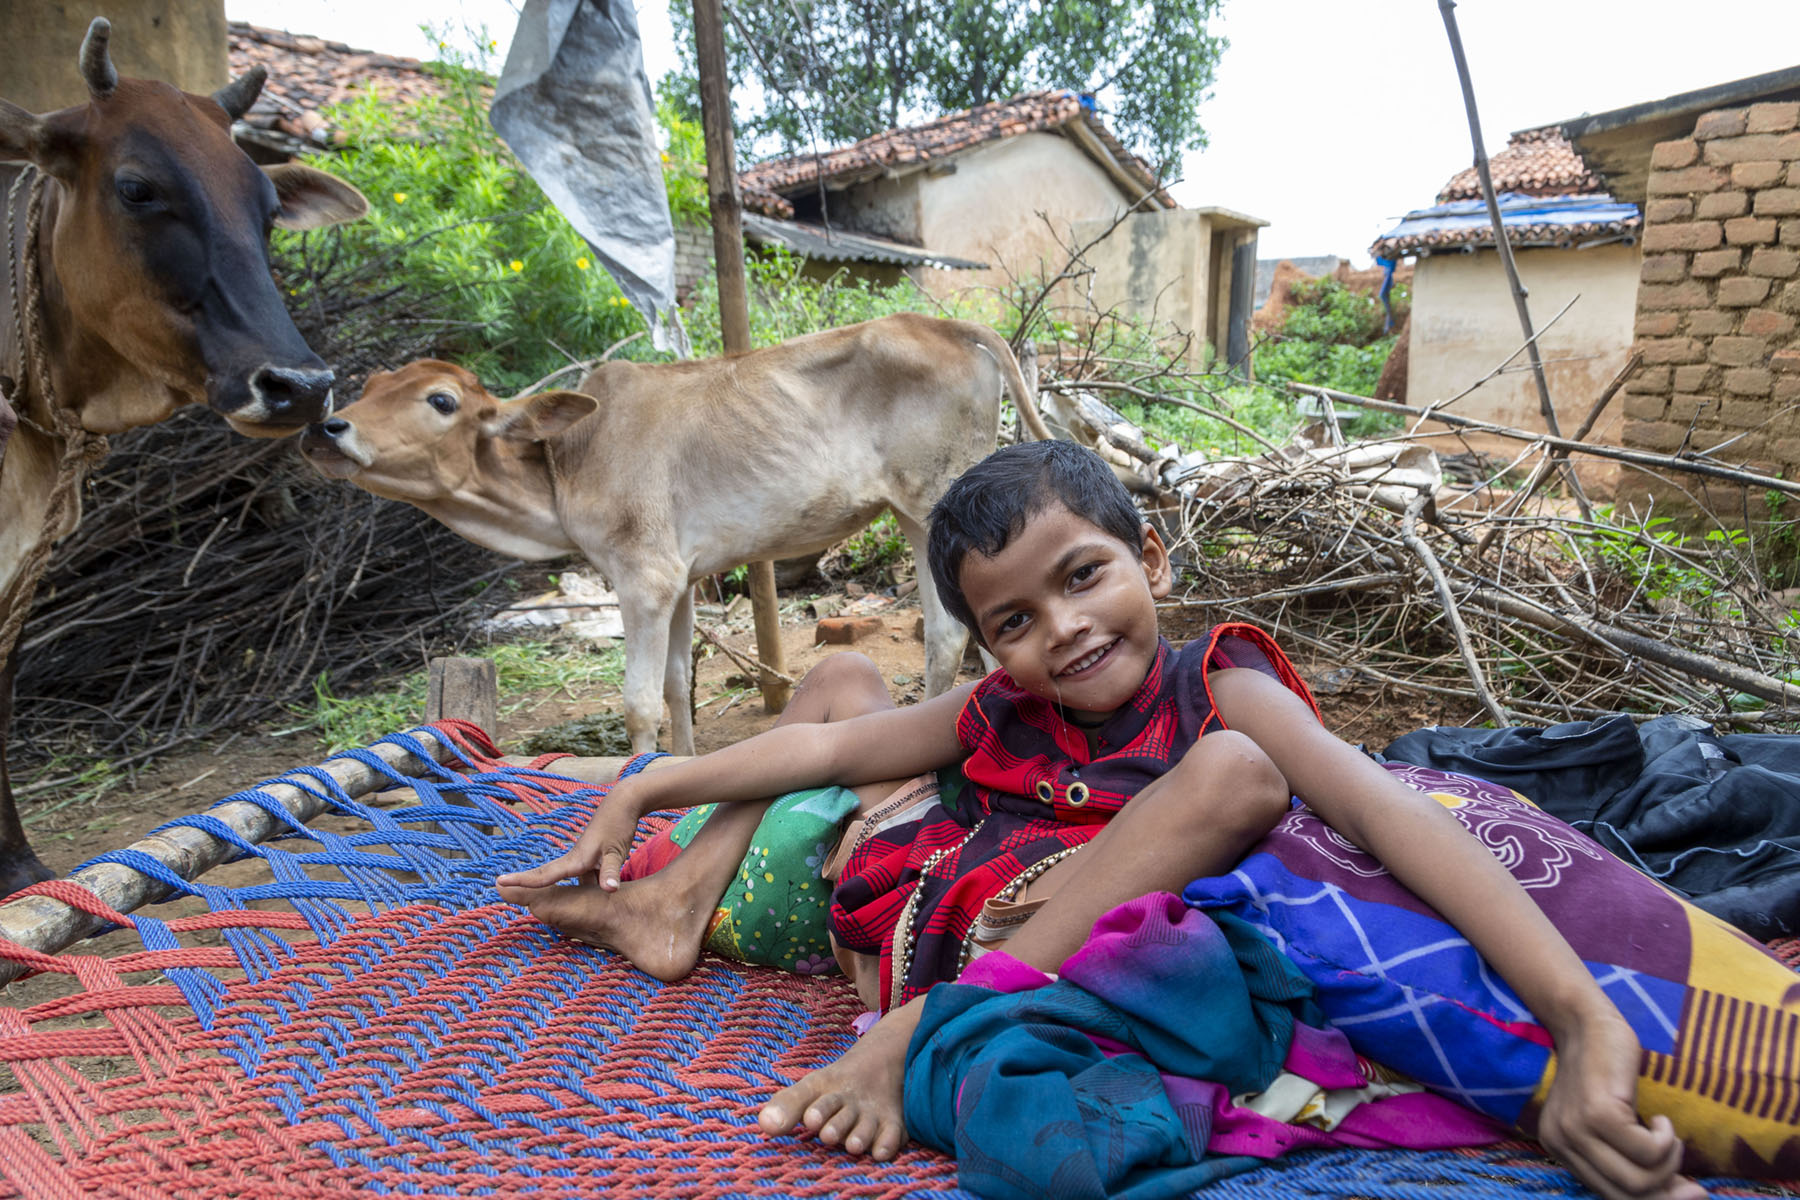 Manisha dressed in a red and brown frock is curled up in a charpoy (string cot) outdoors. She is propped up against two pillows and sits among scattered clothes. Each leg is bent at the knee and rests against a pillow. Her head is tilted and arms are stretched out on either side of her. To the left of the charpoy, a cow with a brown-and-black face and brown-and-cream body is standing and looking at her. A large calf of the same colour is standing and putting its mouth against the cow's mouth. In the background are two buildings with tile roofs.